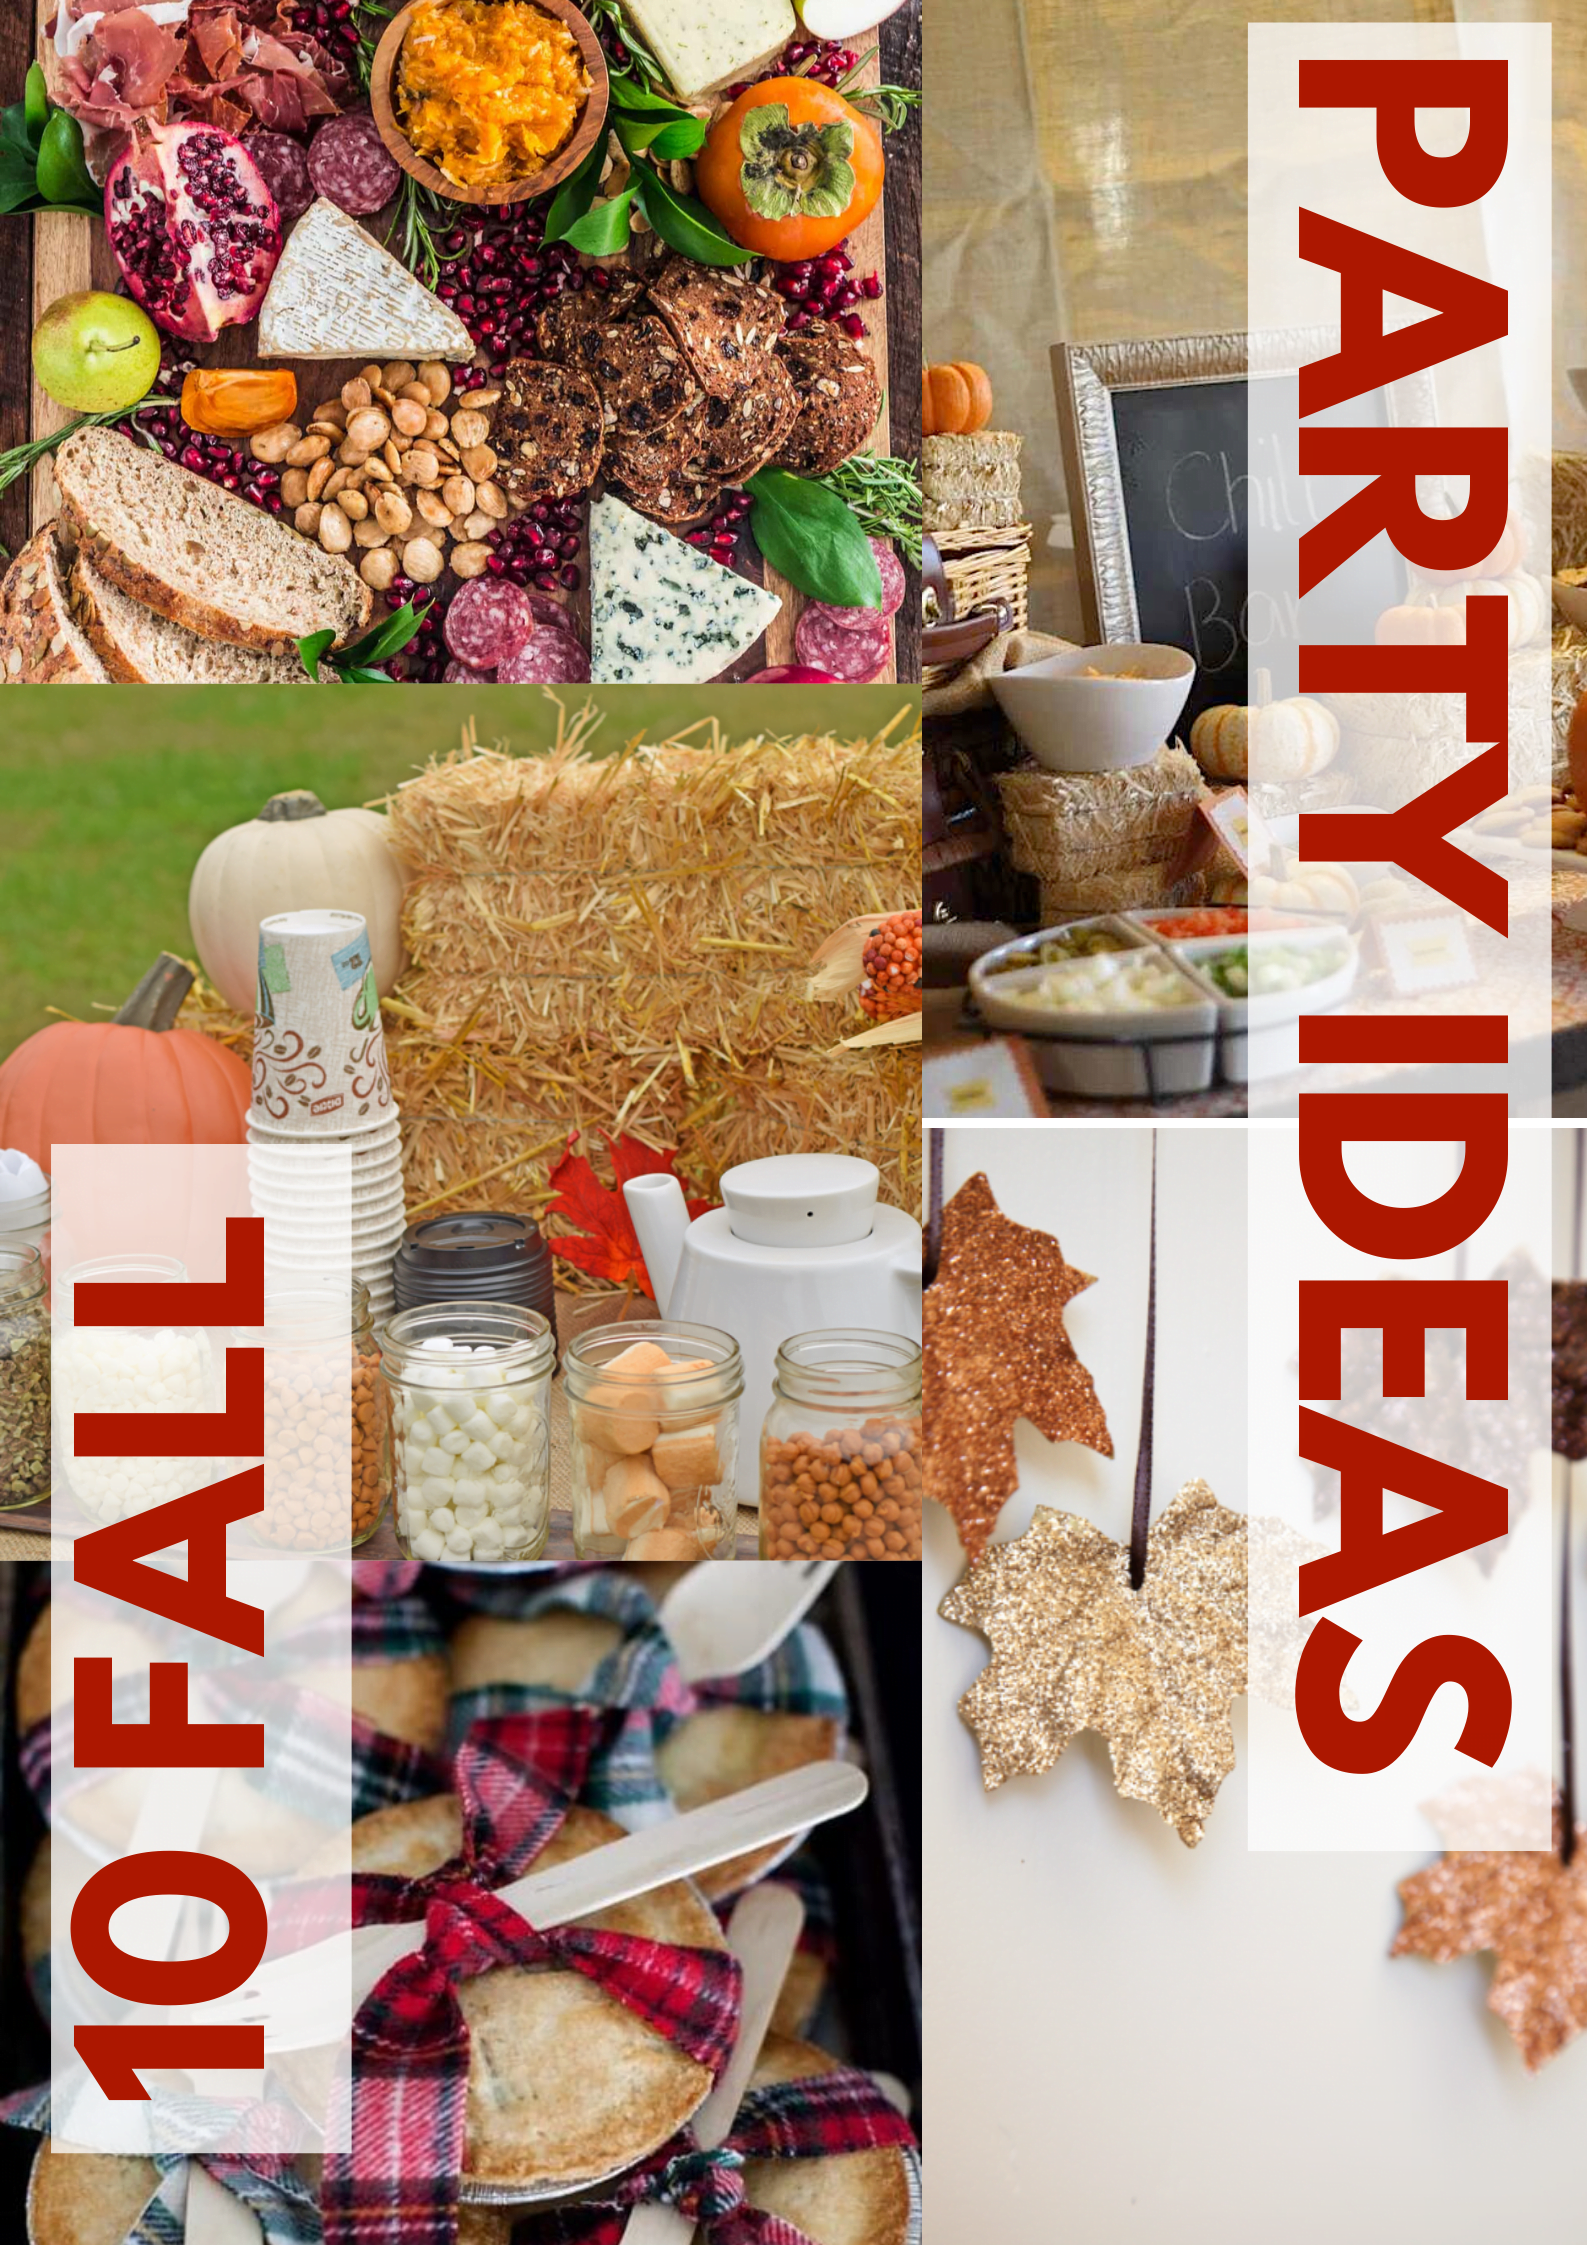 If you are having a party in the fall and are looking for an idea for decoration, we have some great suggestions for you. Have fun with these 10 phenomenal fall party ideas for kids and for adults! #fallpartyideasdecoration #fallpartyideasoutdoor #fallpartyideasforkids @foodeliciousness